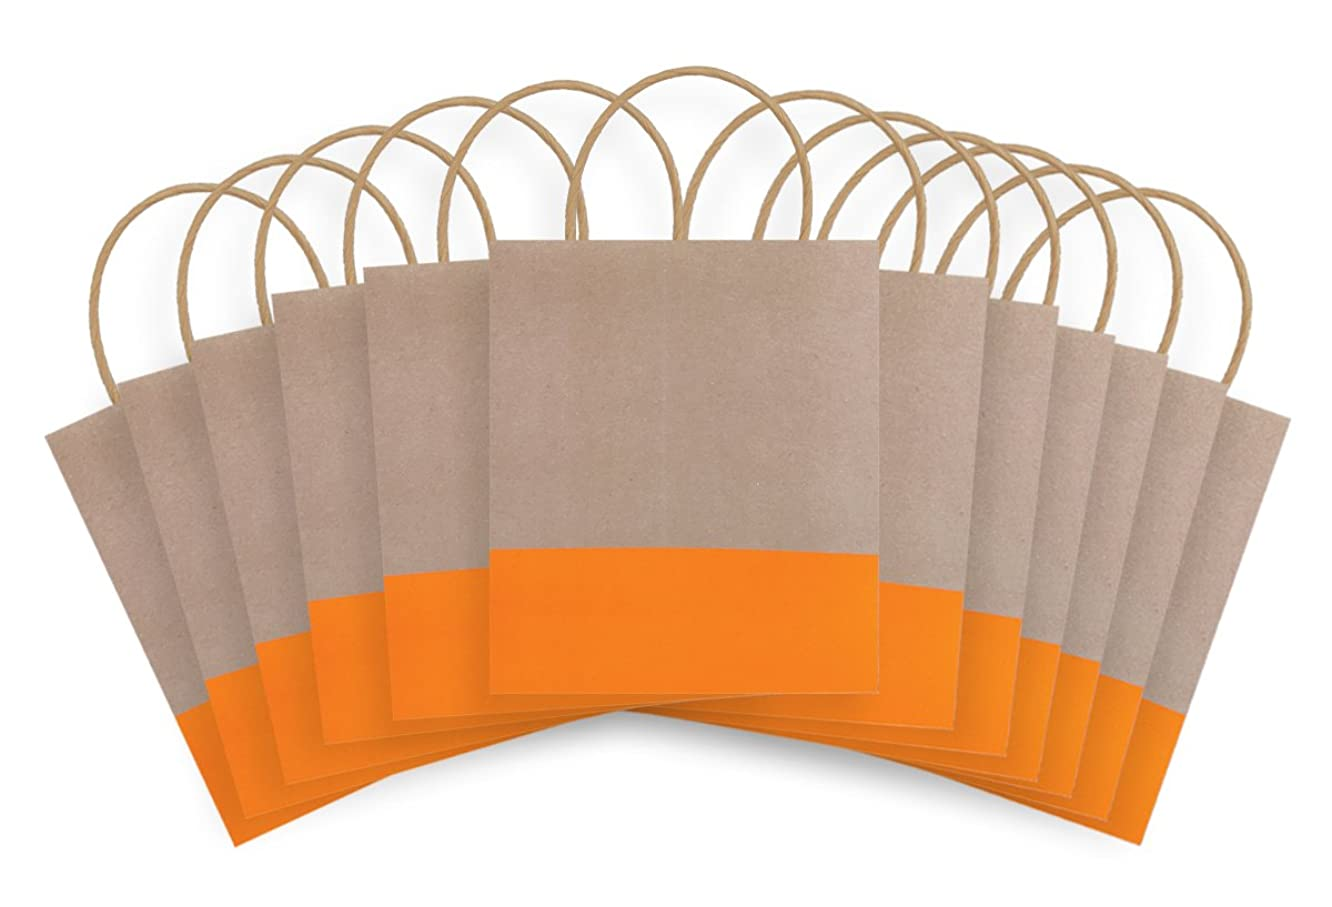 The Gift Wrap Company AMZ112-67 Dipped Recycled Kraft Paper Gift Bags, 12-Count, Sunkiss